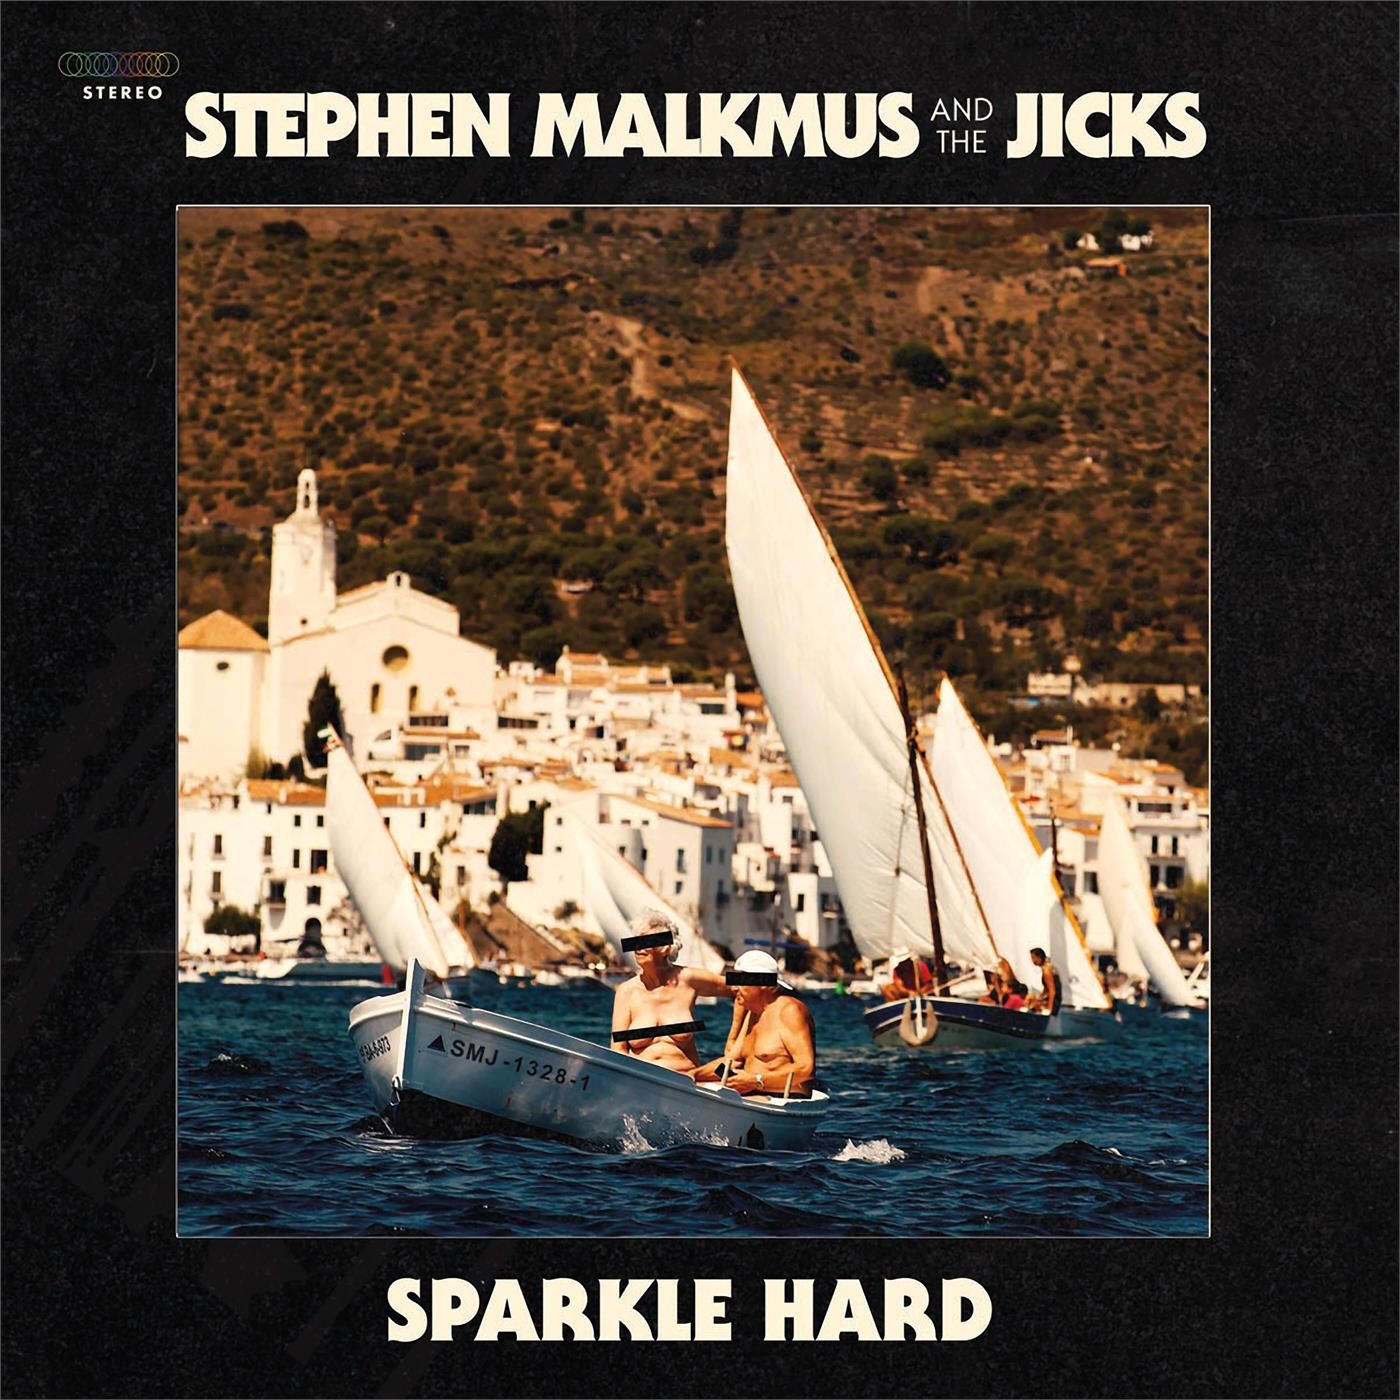 WIGLP429X Domino  Stephen Malkmus & The Jicks Sparkle Hard - LTD (LP)